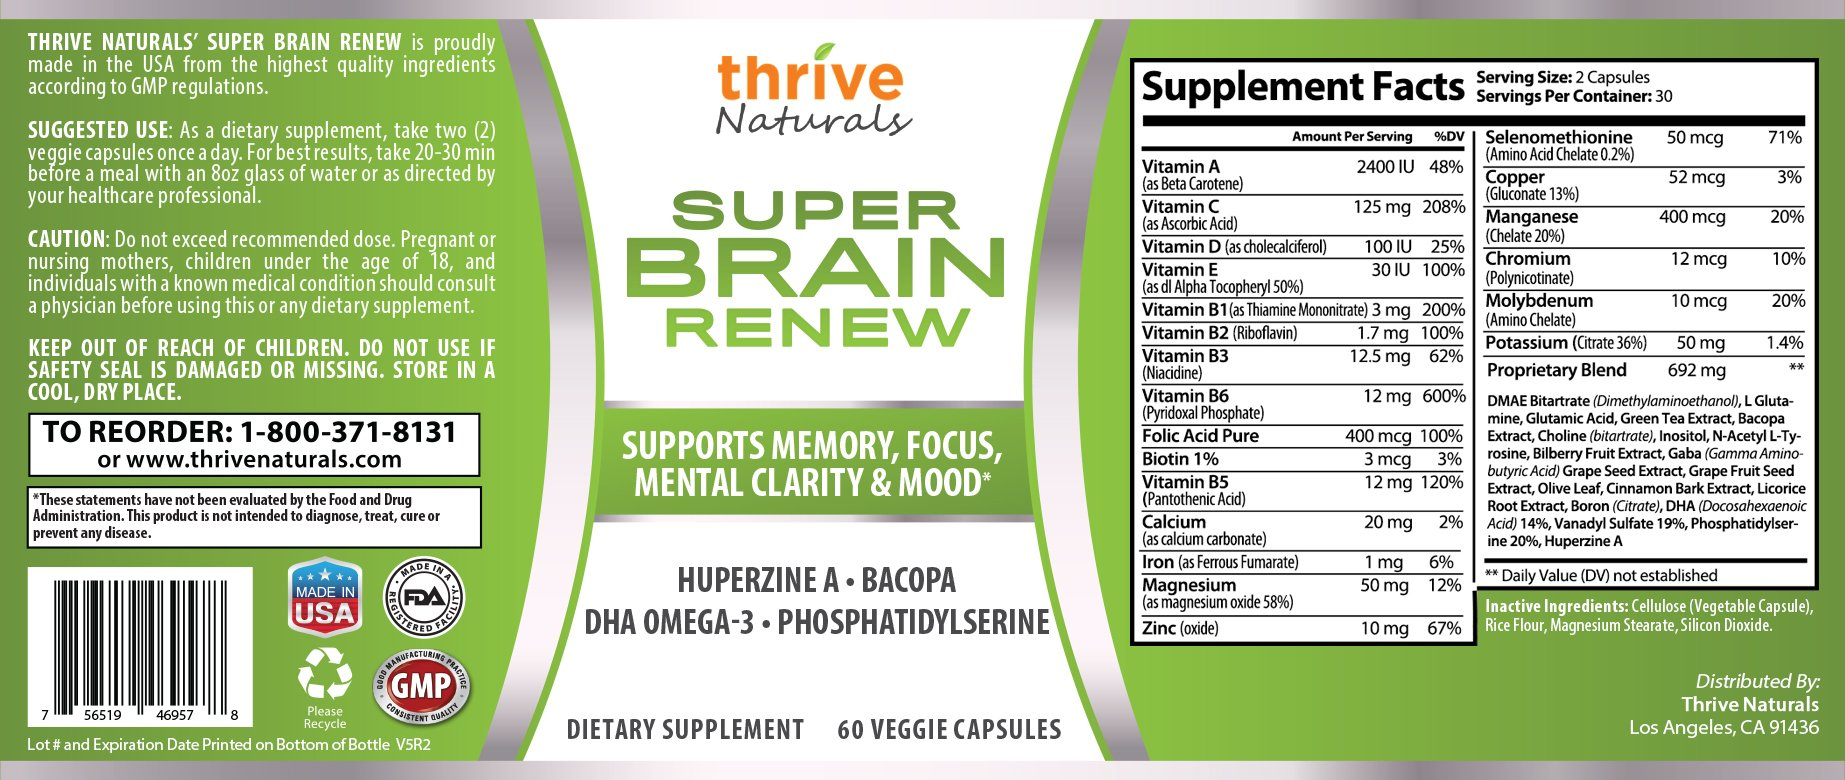 Thrive Naturals Super Brain Renew - Maximum Strength for Improved Cognitive Function, Memory, Focus and Mental Clarity - 60 Vegetarian Capsules - 1 Month Supply by Thrive Naturals (Image #3)